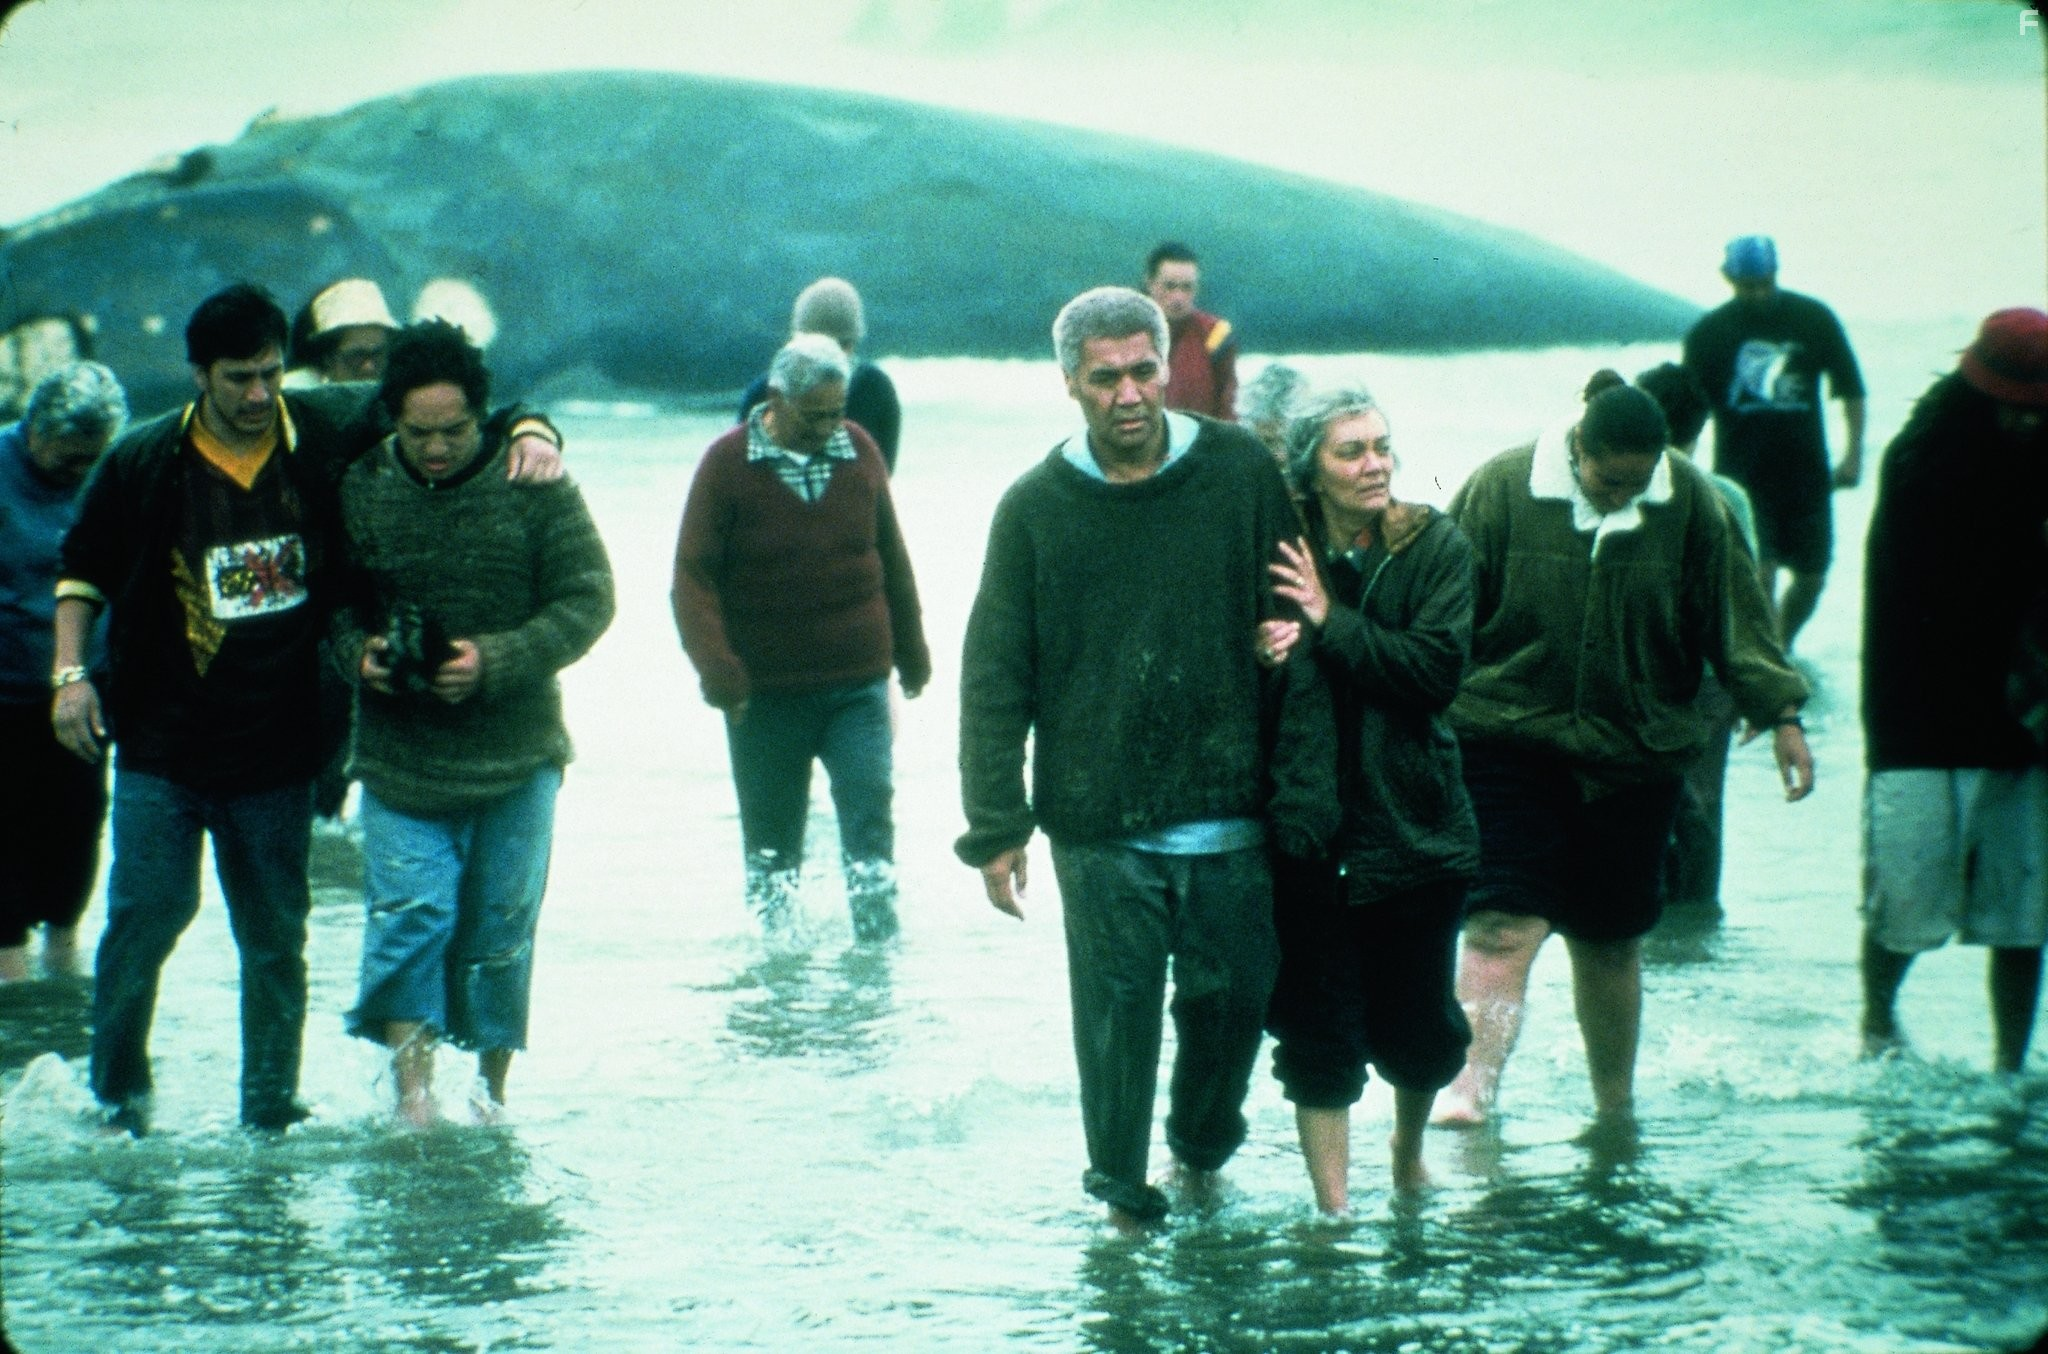 the whale rider essay The whale rider by witt alhambra has many important themes that are represented by several characters in the text such as koru farina, who struggles to put aside.